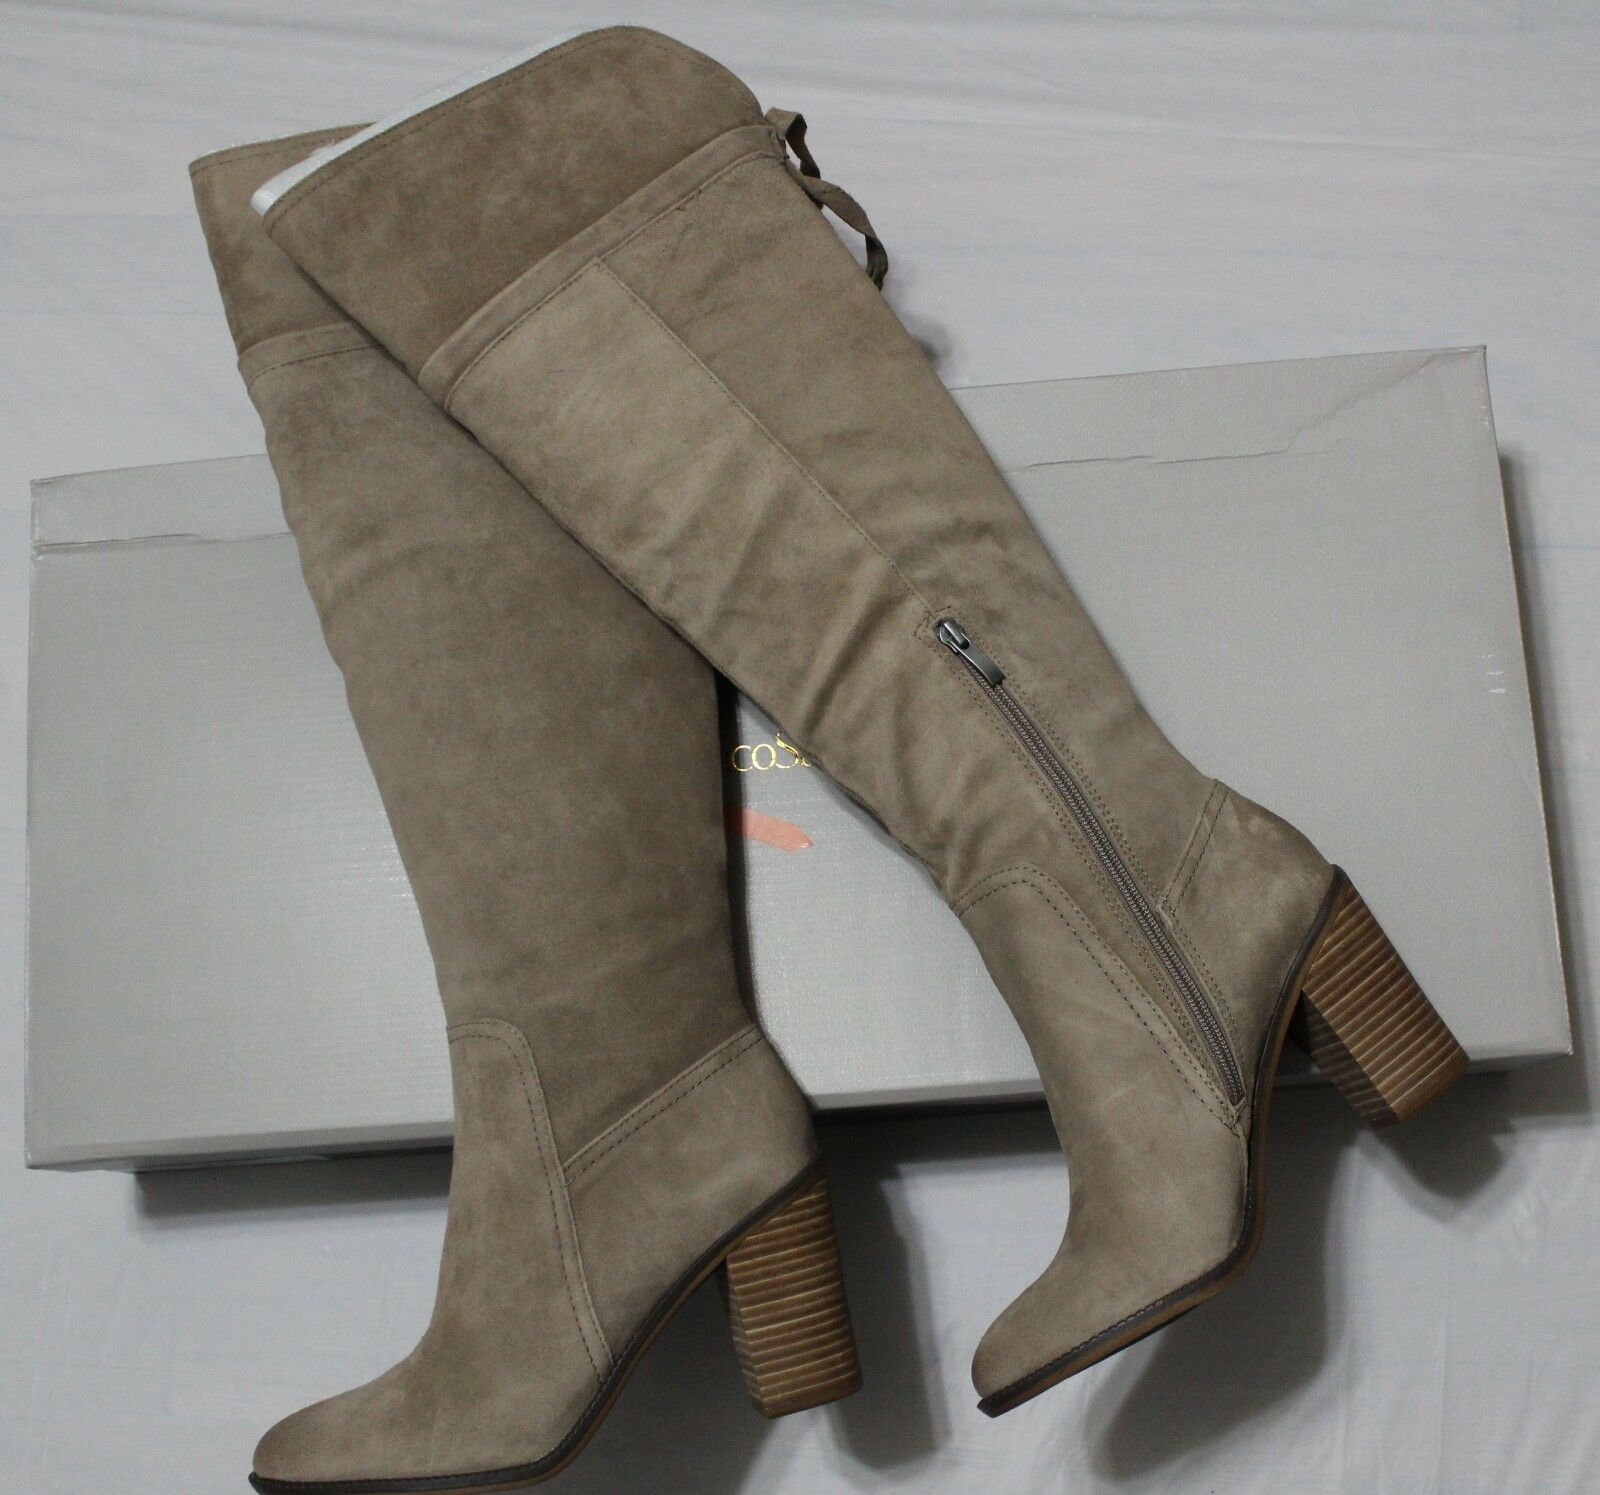 225 Franco Sarto Ellyn taupe taupe taupe daim Cuissardes démarrage US 10 m 491b0d